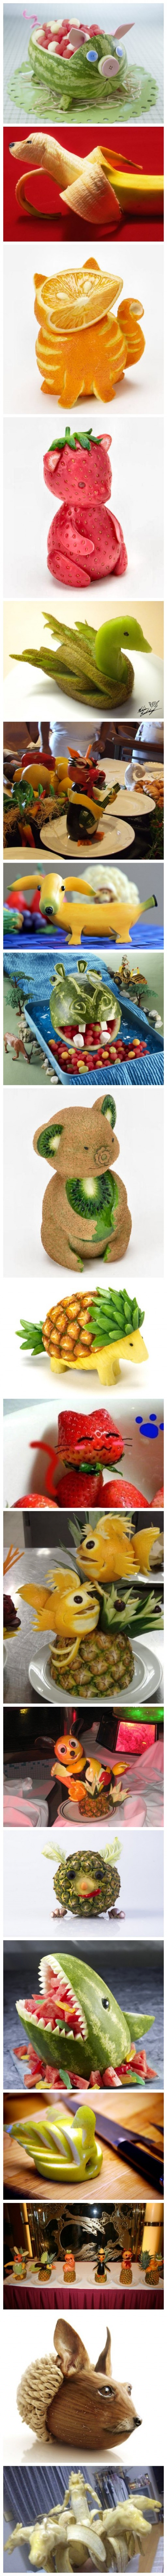 Fruit Carving Fun - When Creativity Meets Fruits 3